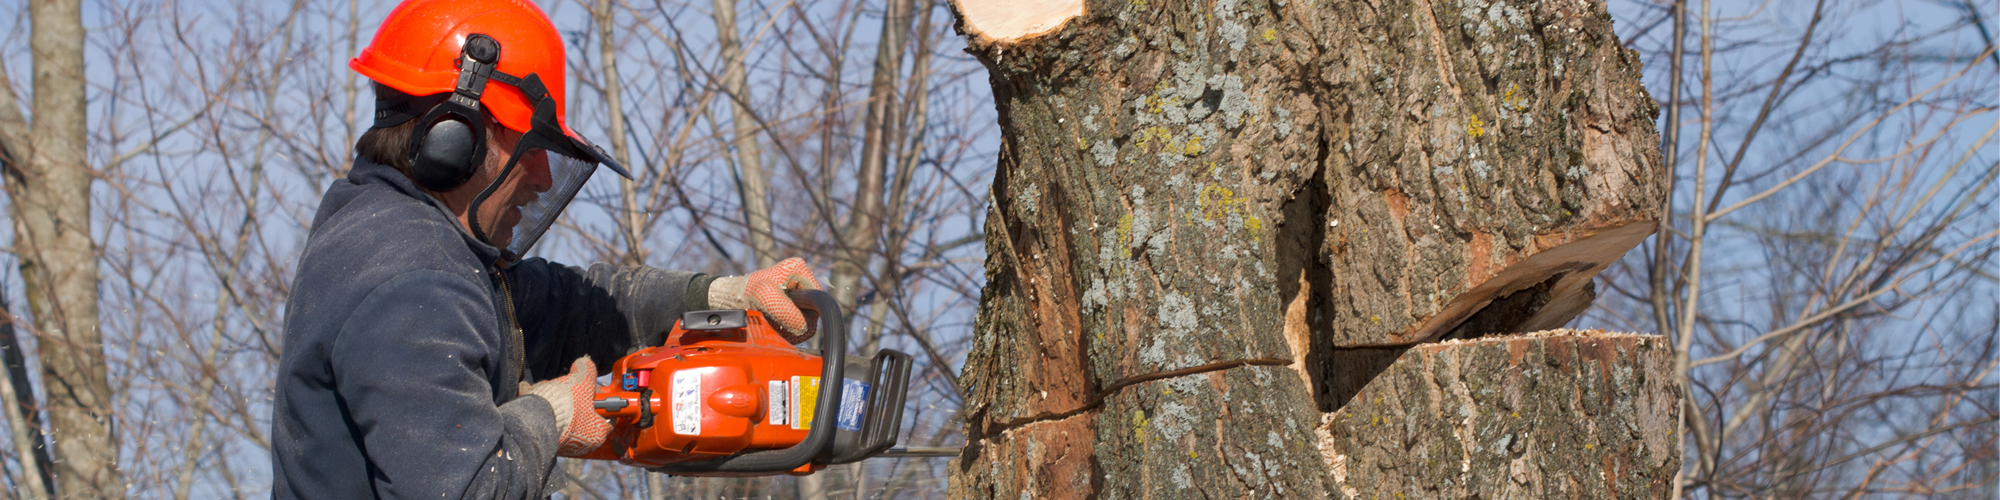 Tree Removal Services in Berlin, CT